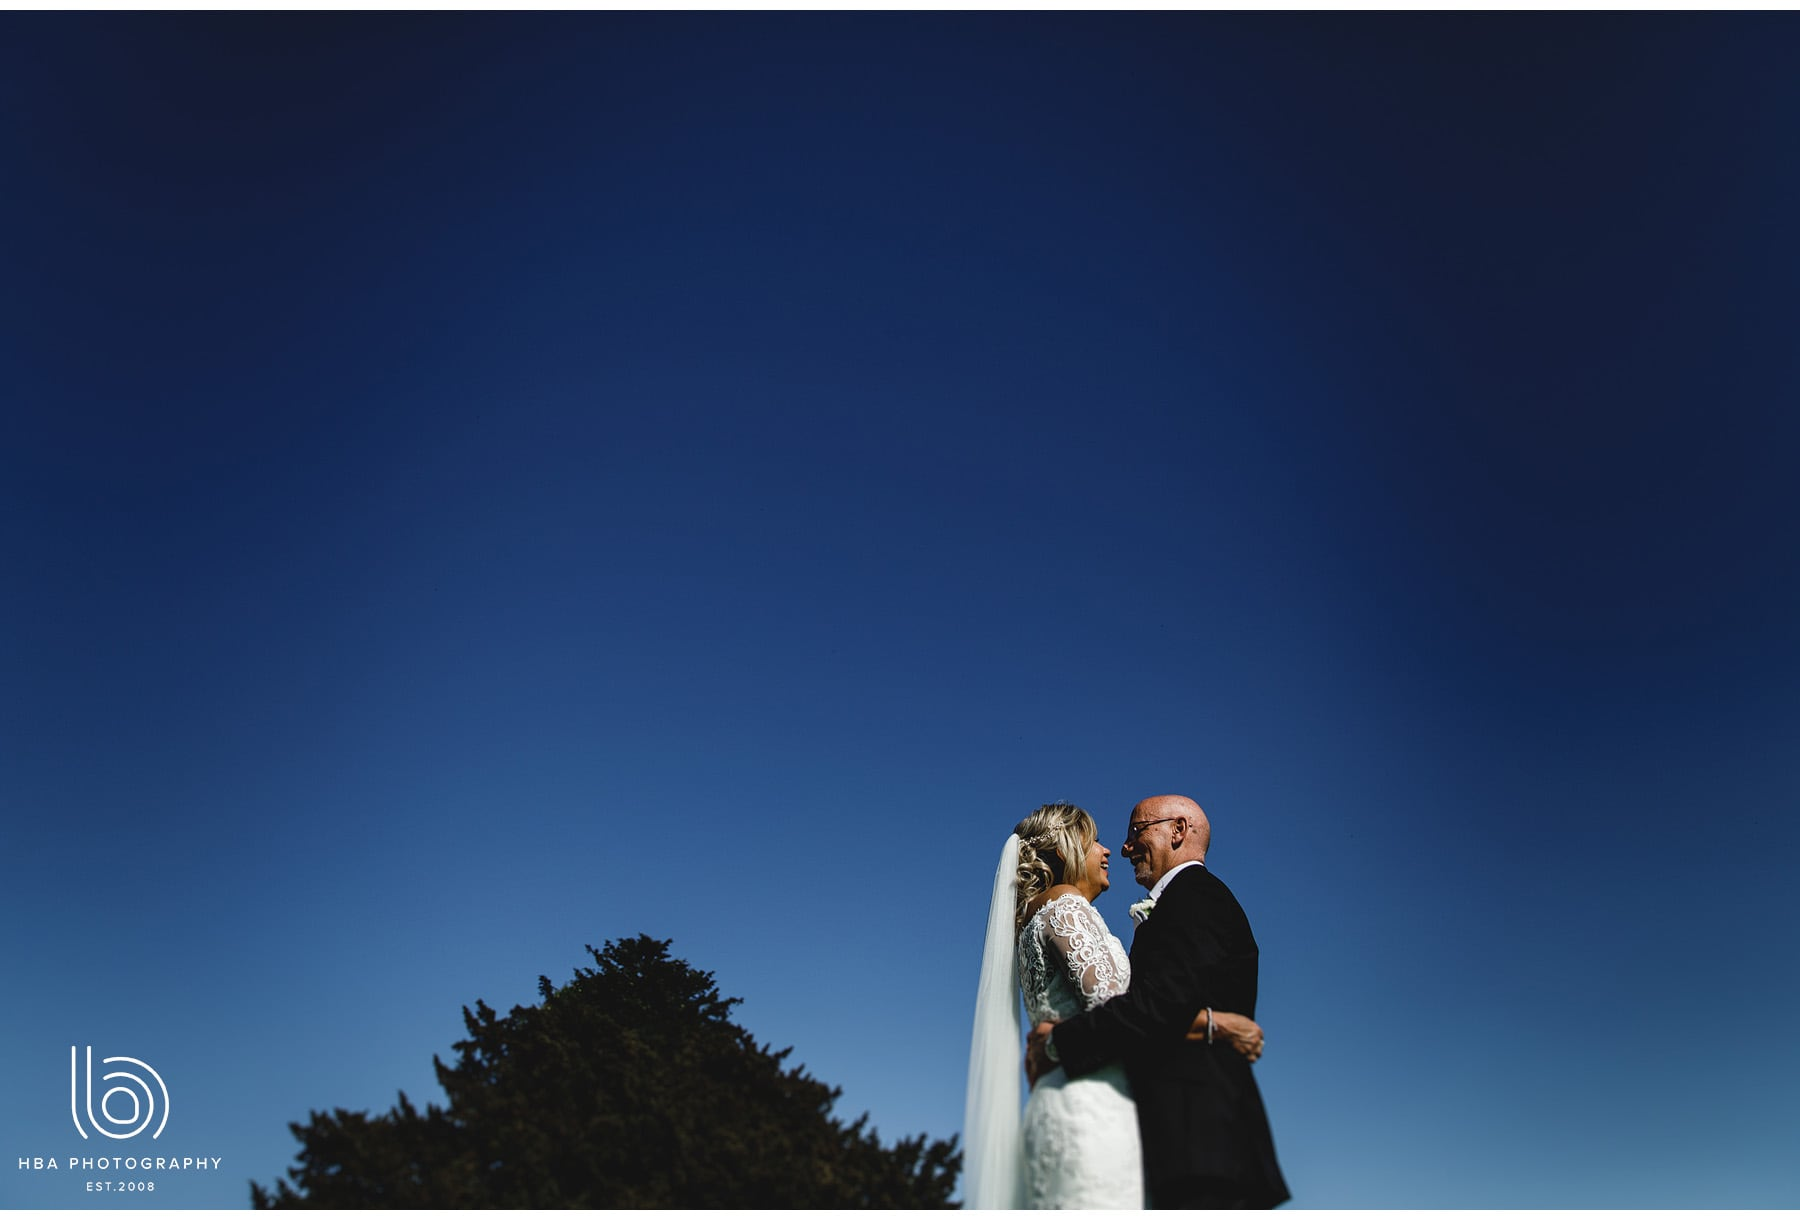 the bride & groom against a bright blue sky